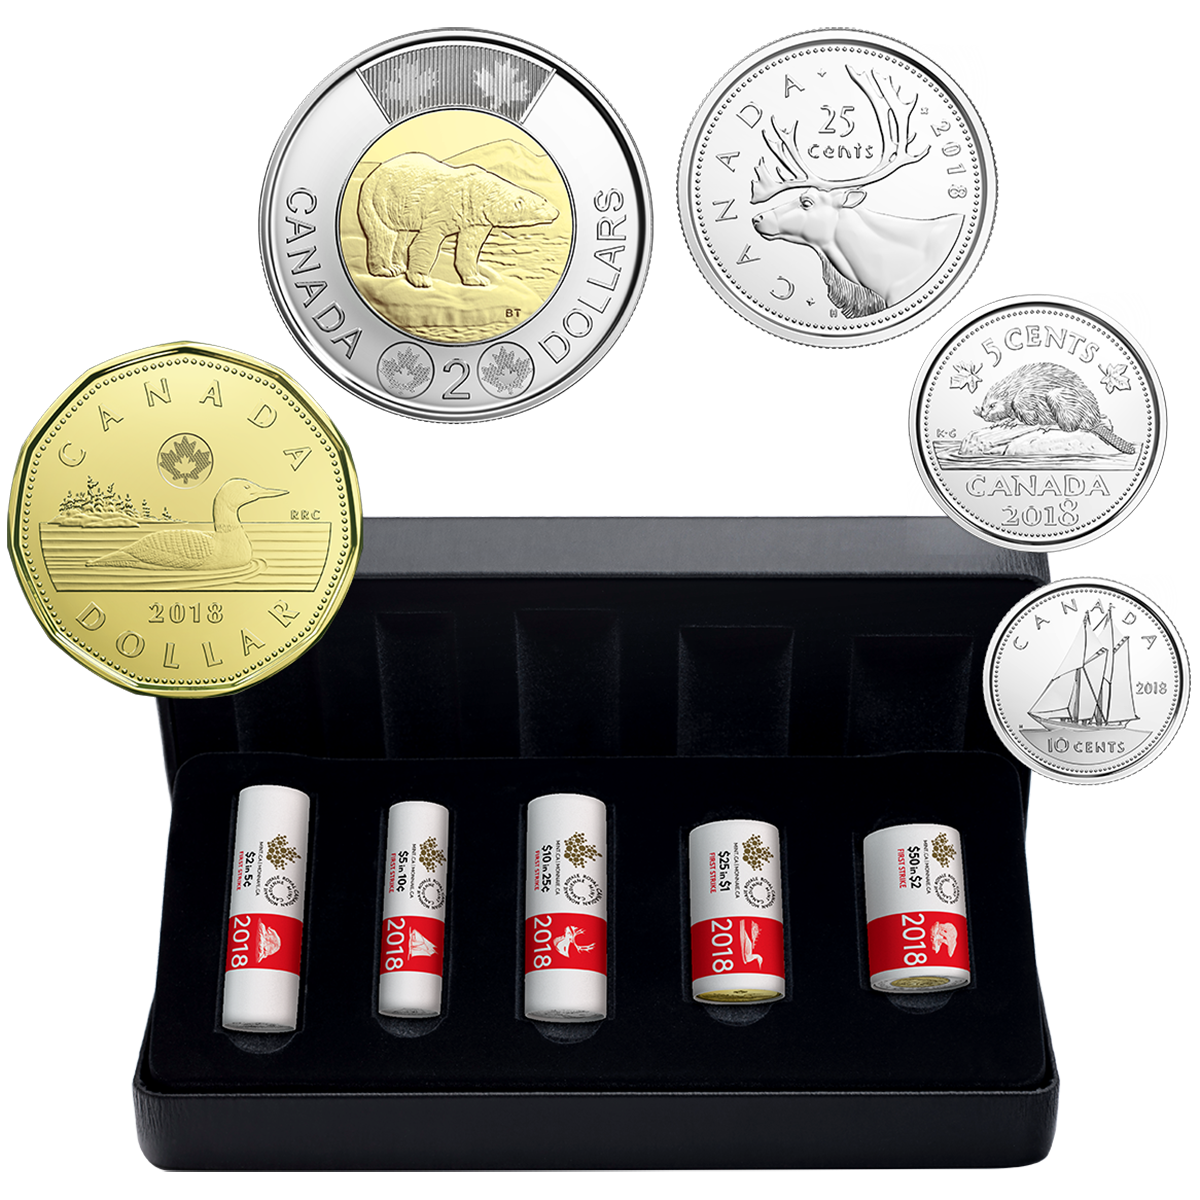 2016 CANADA 5 CENTS COMPLETE ROLL 40 COINS